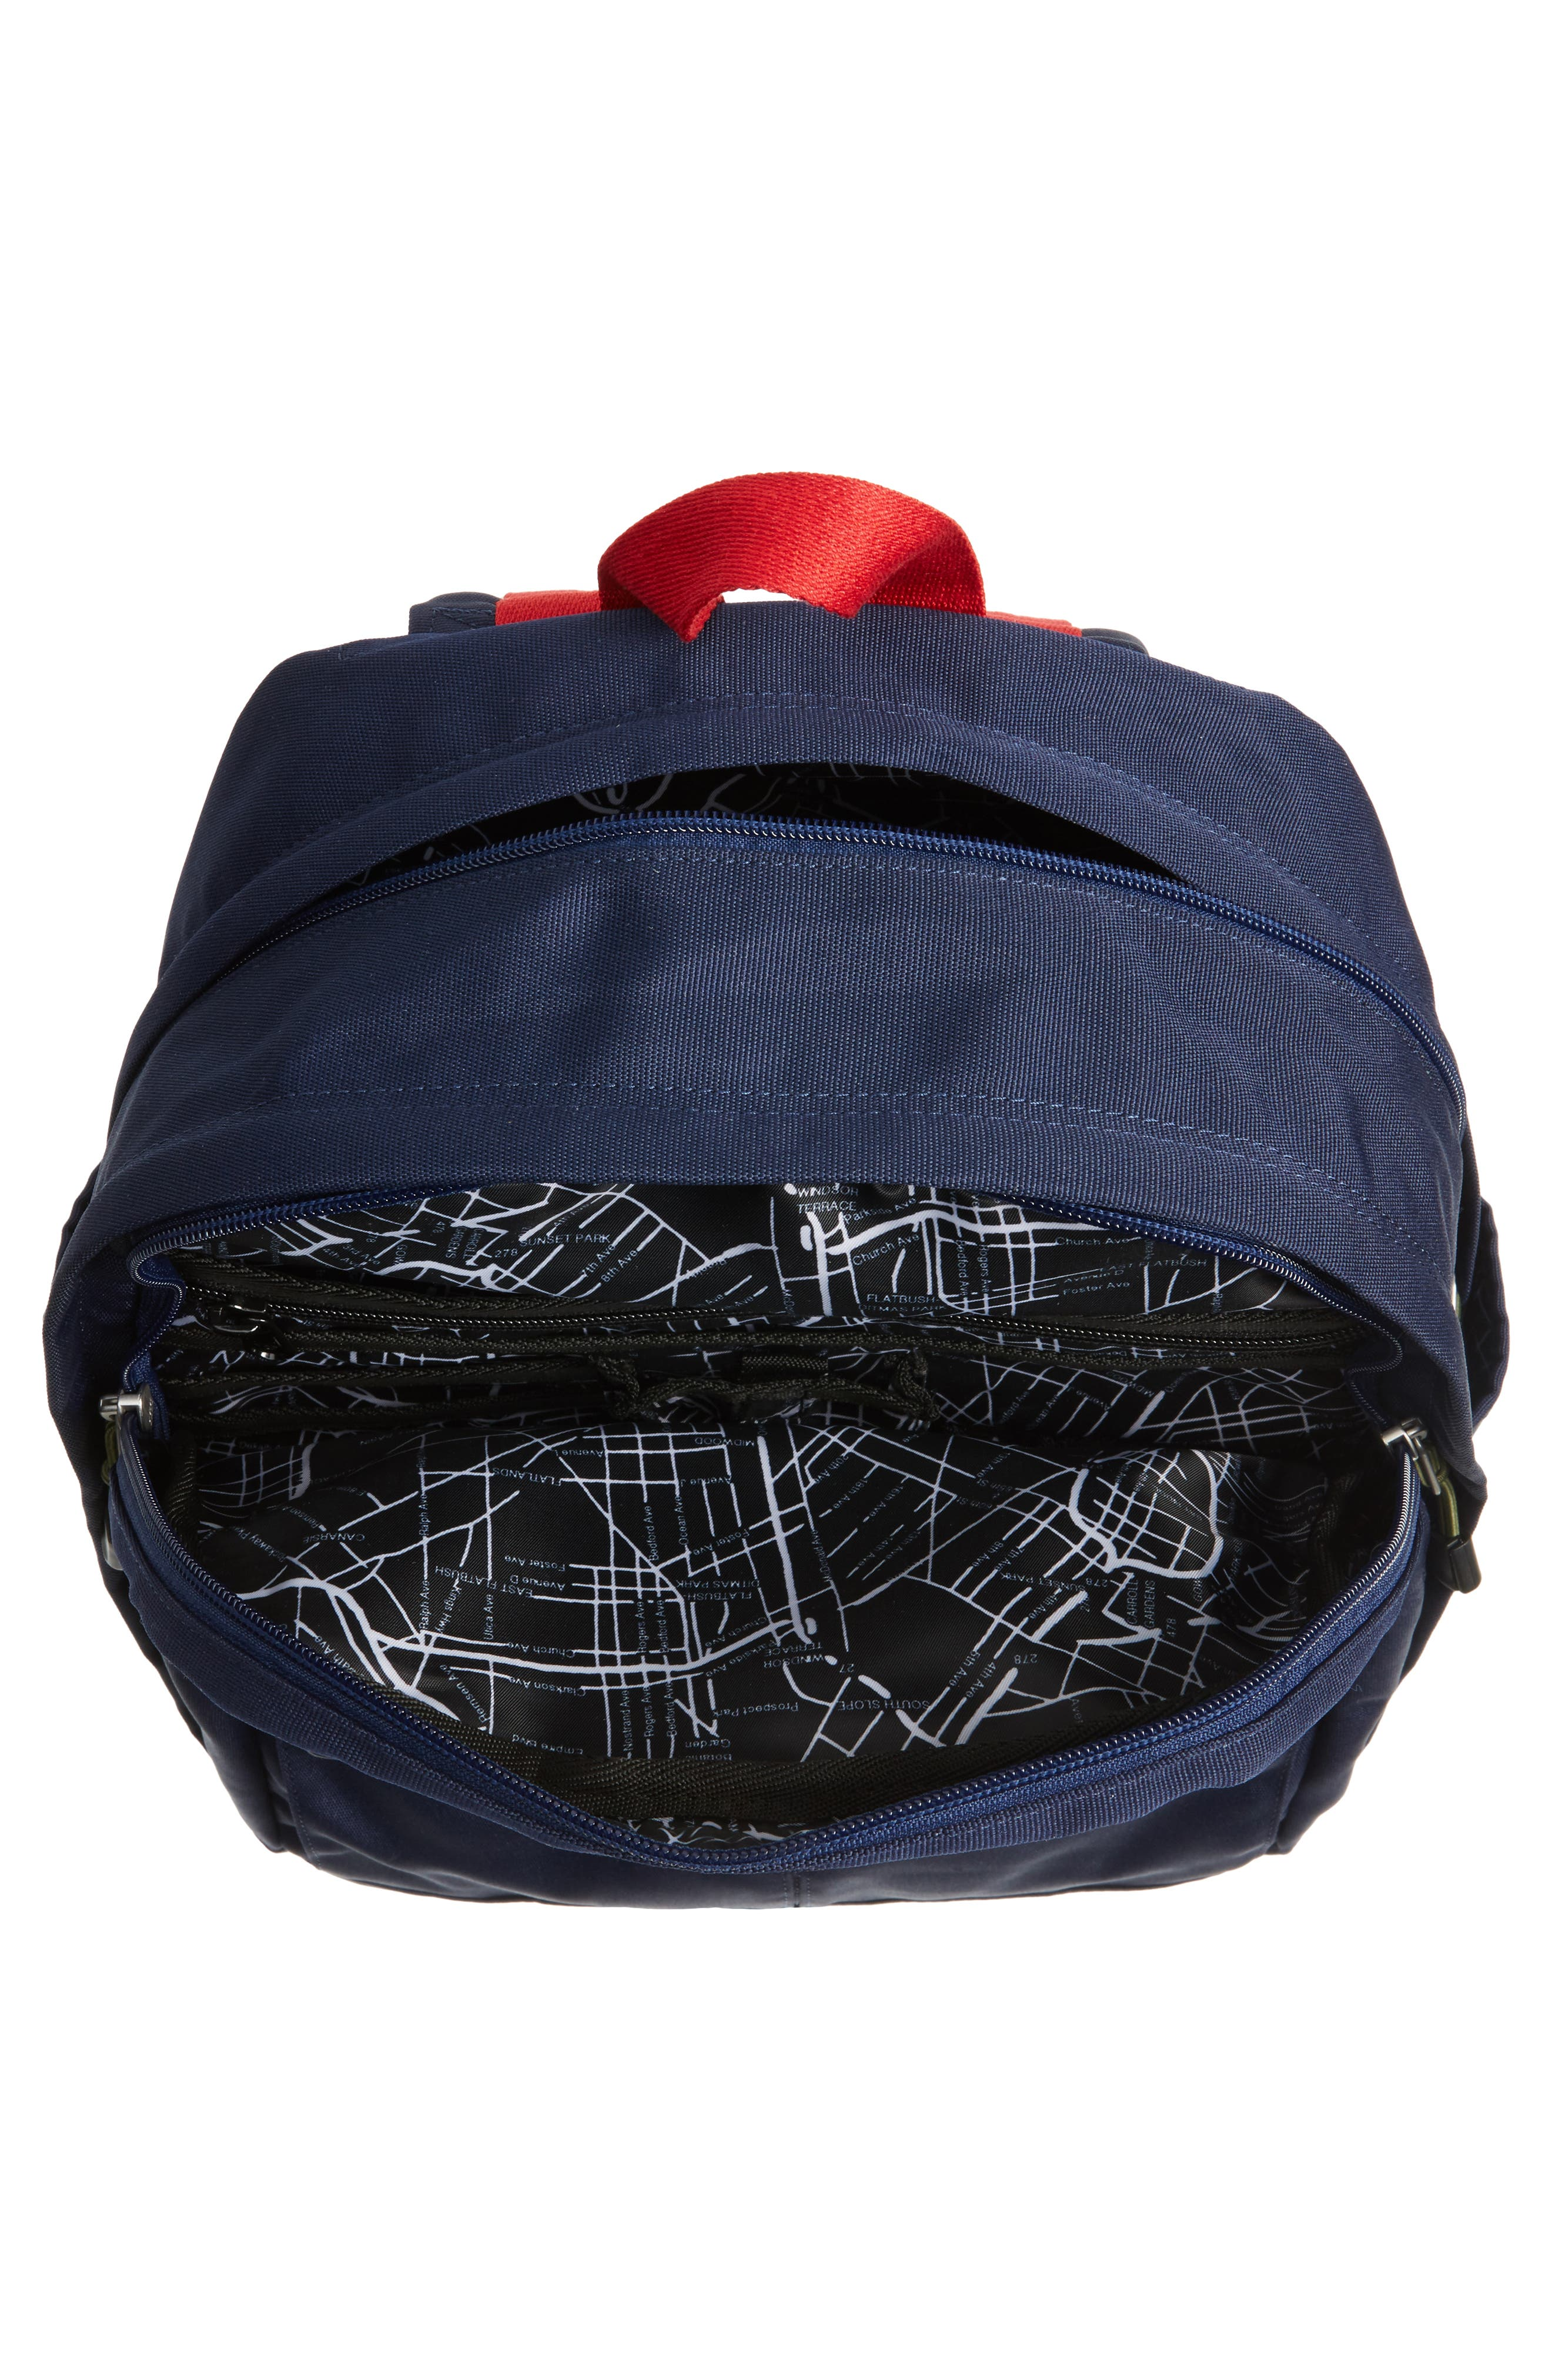 Williamsburg Bedford Backpack,                             Alternate thumbnail 4, color,                             Navy